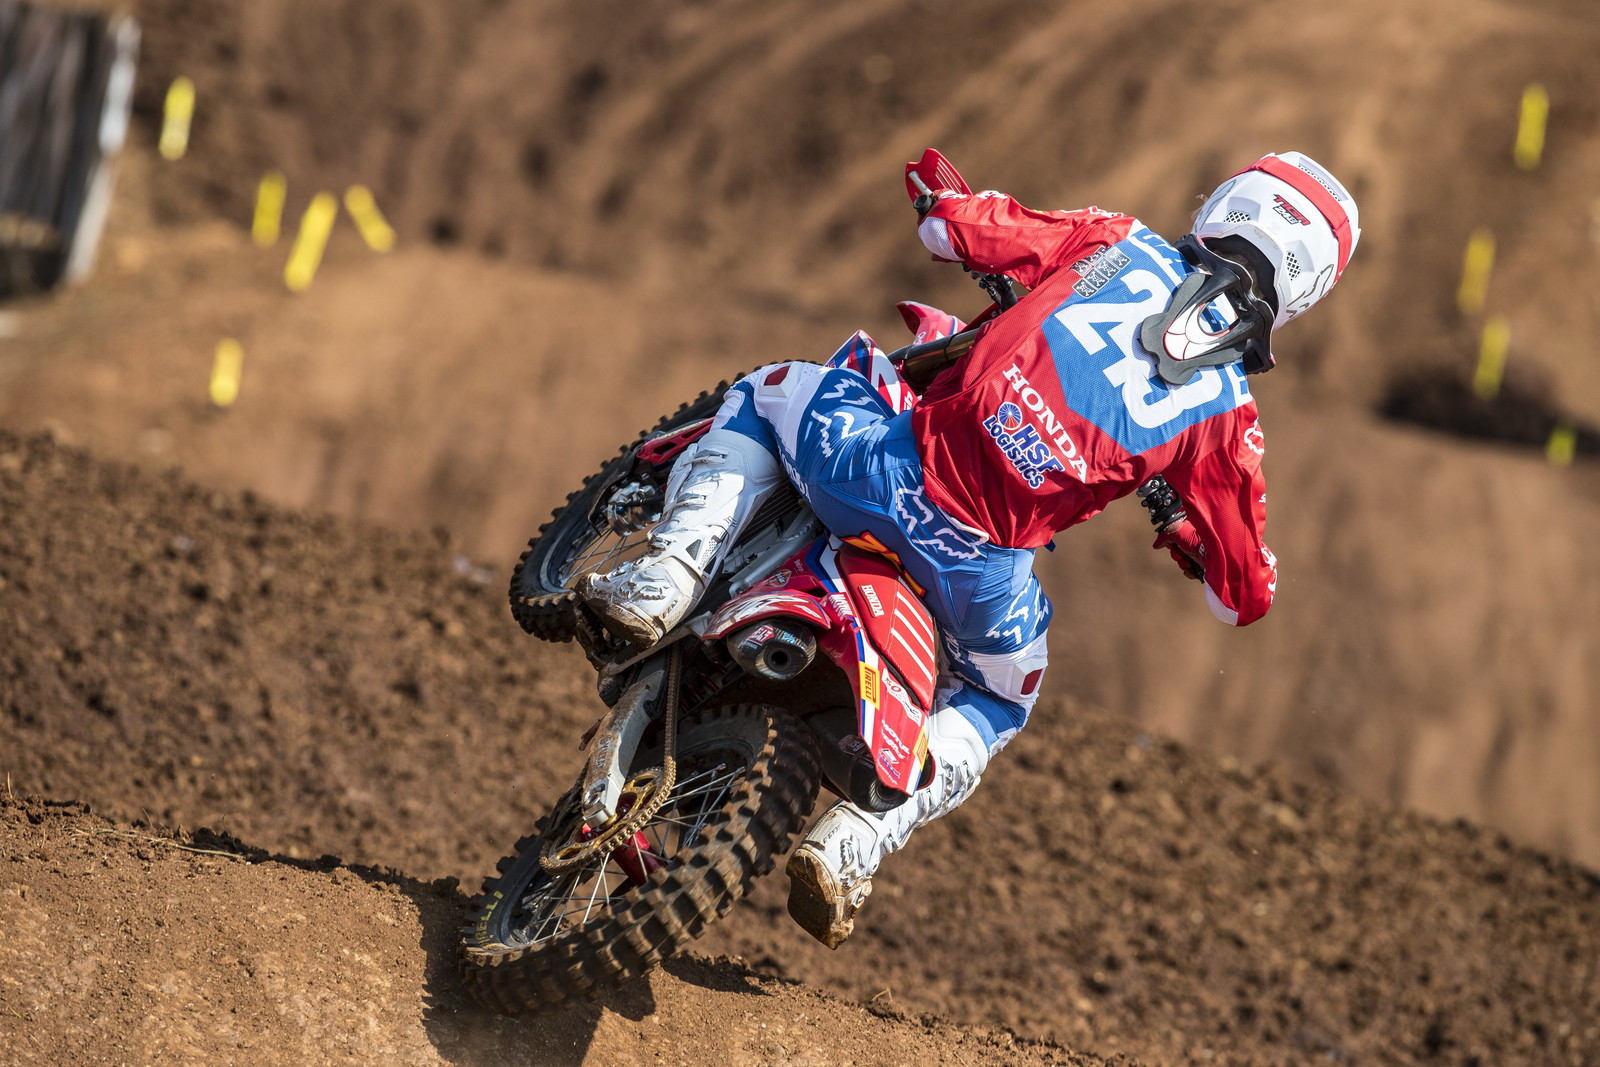 Tim Gajser: I was having fun on both days this weekend. Unfortunately yesterday I had a crash in timed practice and I hurt my right ankle a little bit, but other than a bit of pain yesterday, it was certainly a great weekend again. In the first moto I had a great start, taking the holeshot and leading the whole race. In the second one, I started third and made quick pass, and then made another one a bit later in lap one before making a gap to control the race. I was really having fun out there although the track was a little slippery in some places, but I still got two moto wins so I can't complain! I'm trying not to put pressure on myself on each weekend and I know if I can have fun, I can ride really fast and that seems to be working right now. It is also an honour to have the biggest win-streak for a Honda rider in world motocross, a lot of really talented riders have ridden on this great brand and it is amazing to have achieved this. I hope I can keep it going for as long as possible, and I must also thank Team HRC for helping me out so much and giving me all the support I need in order to do this.